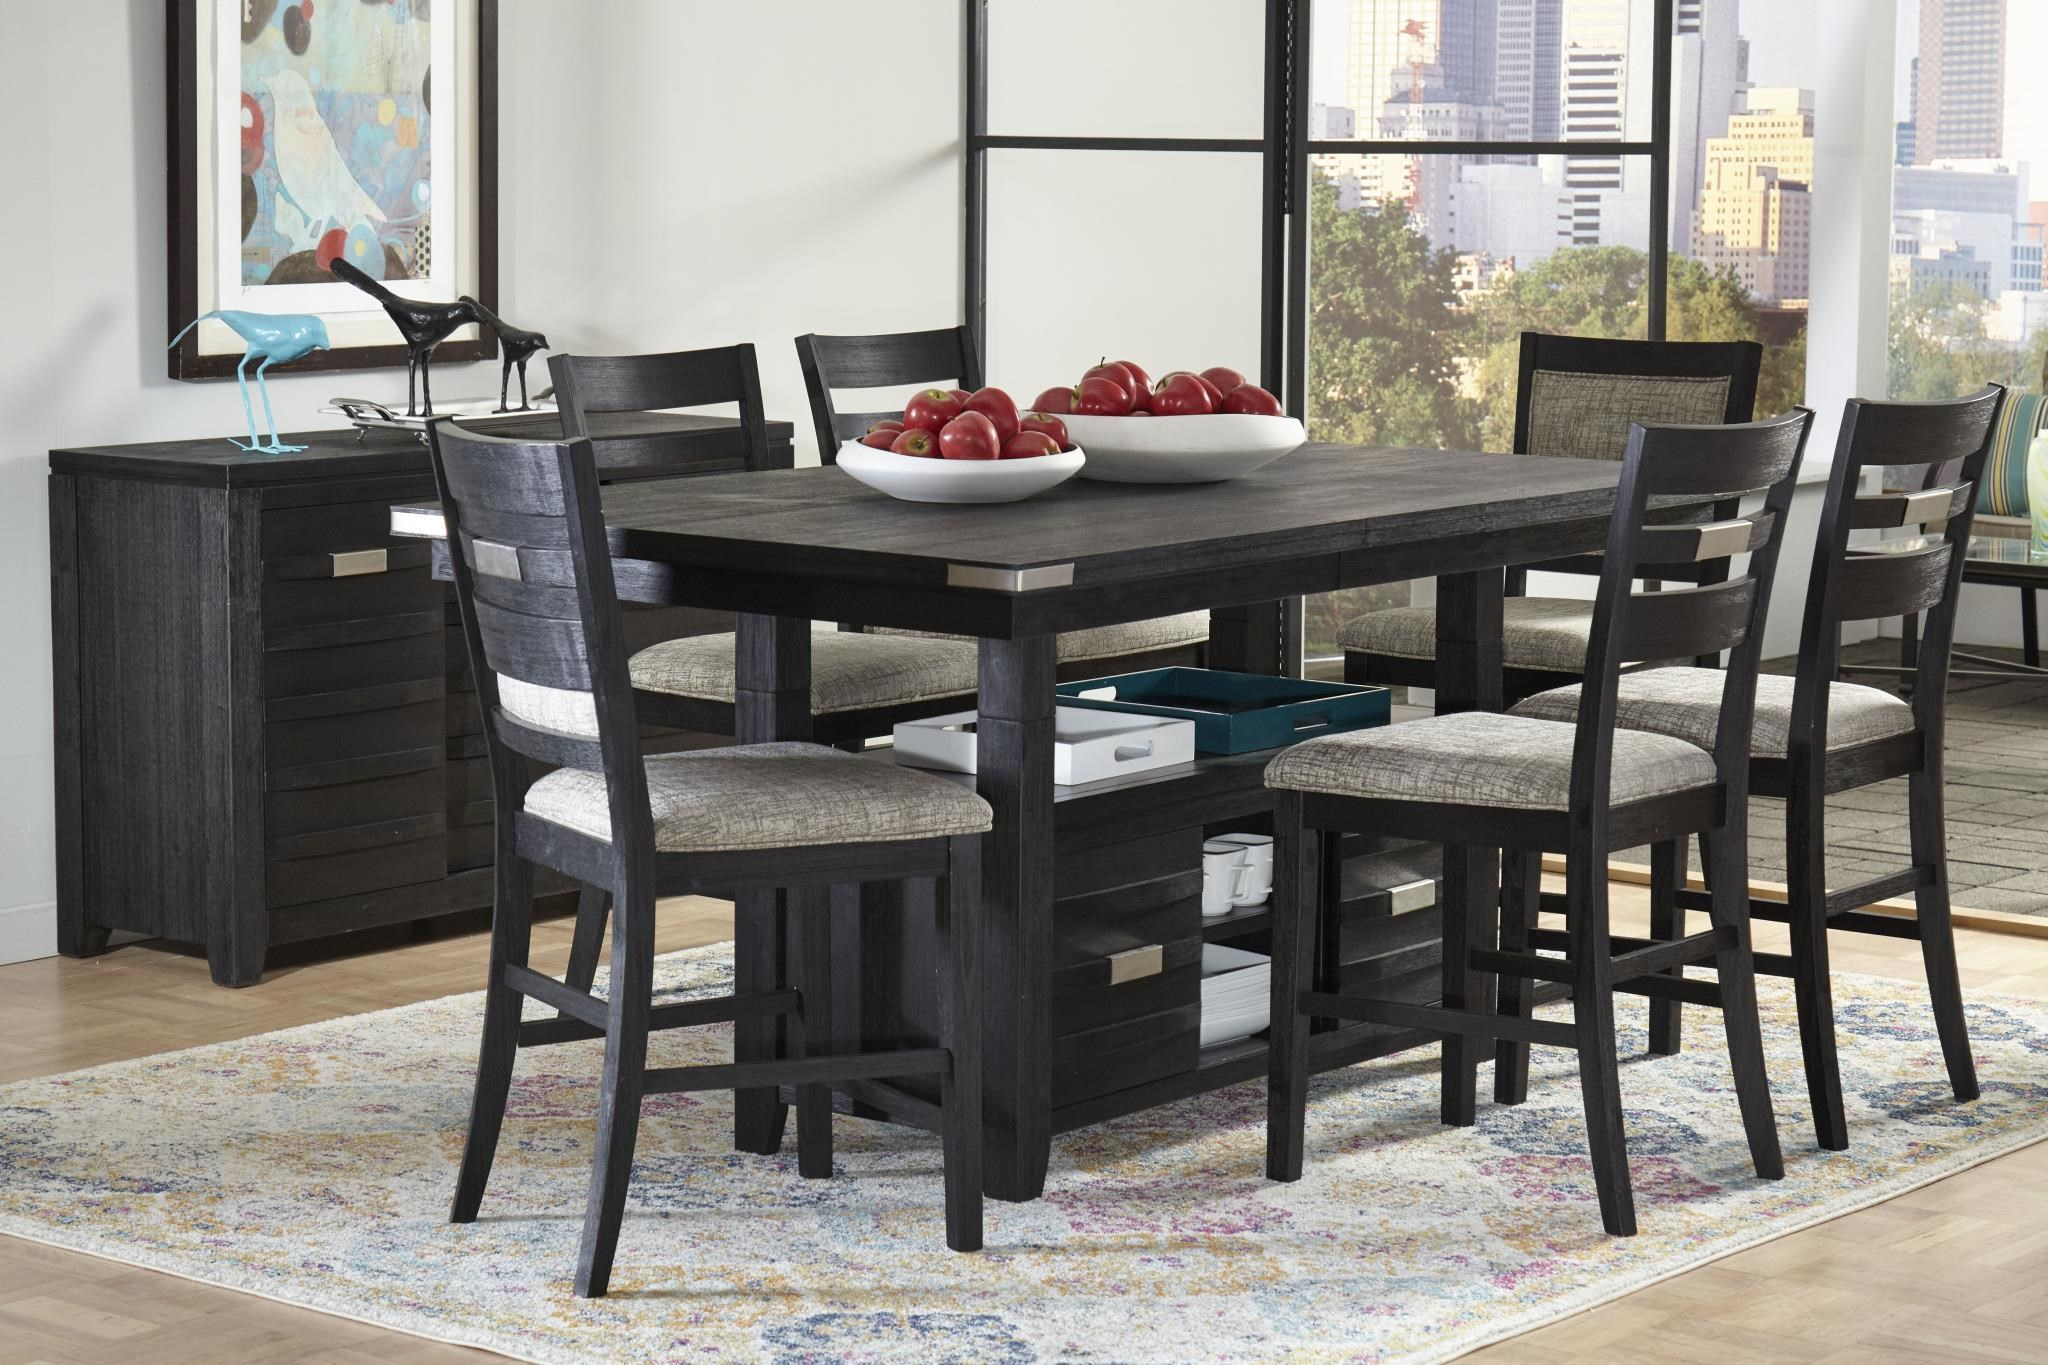 6-Piece Counter Height Dining Table Set